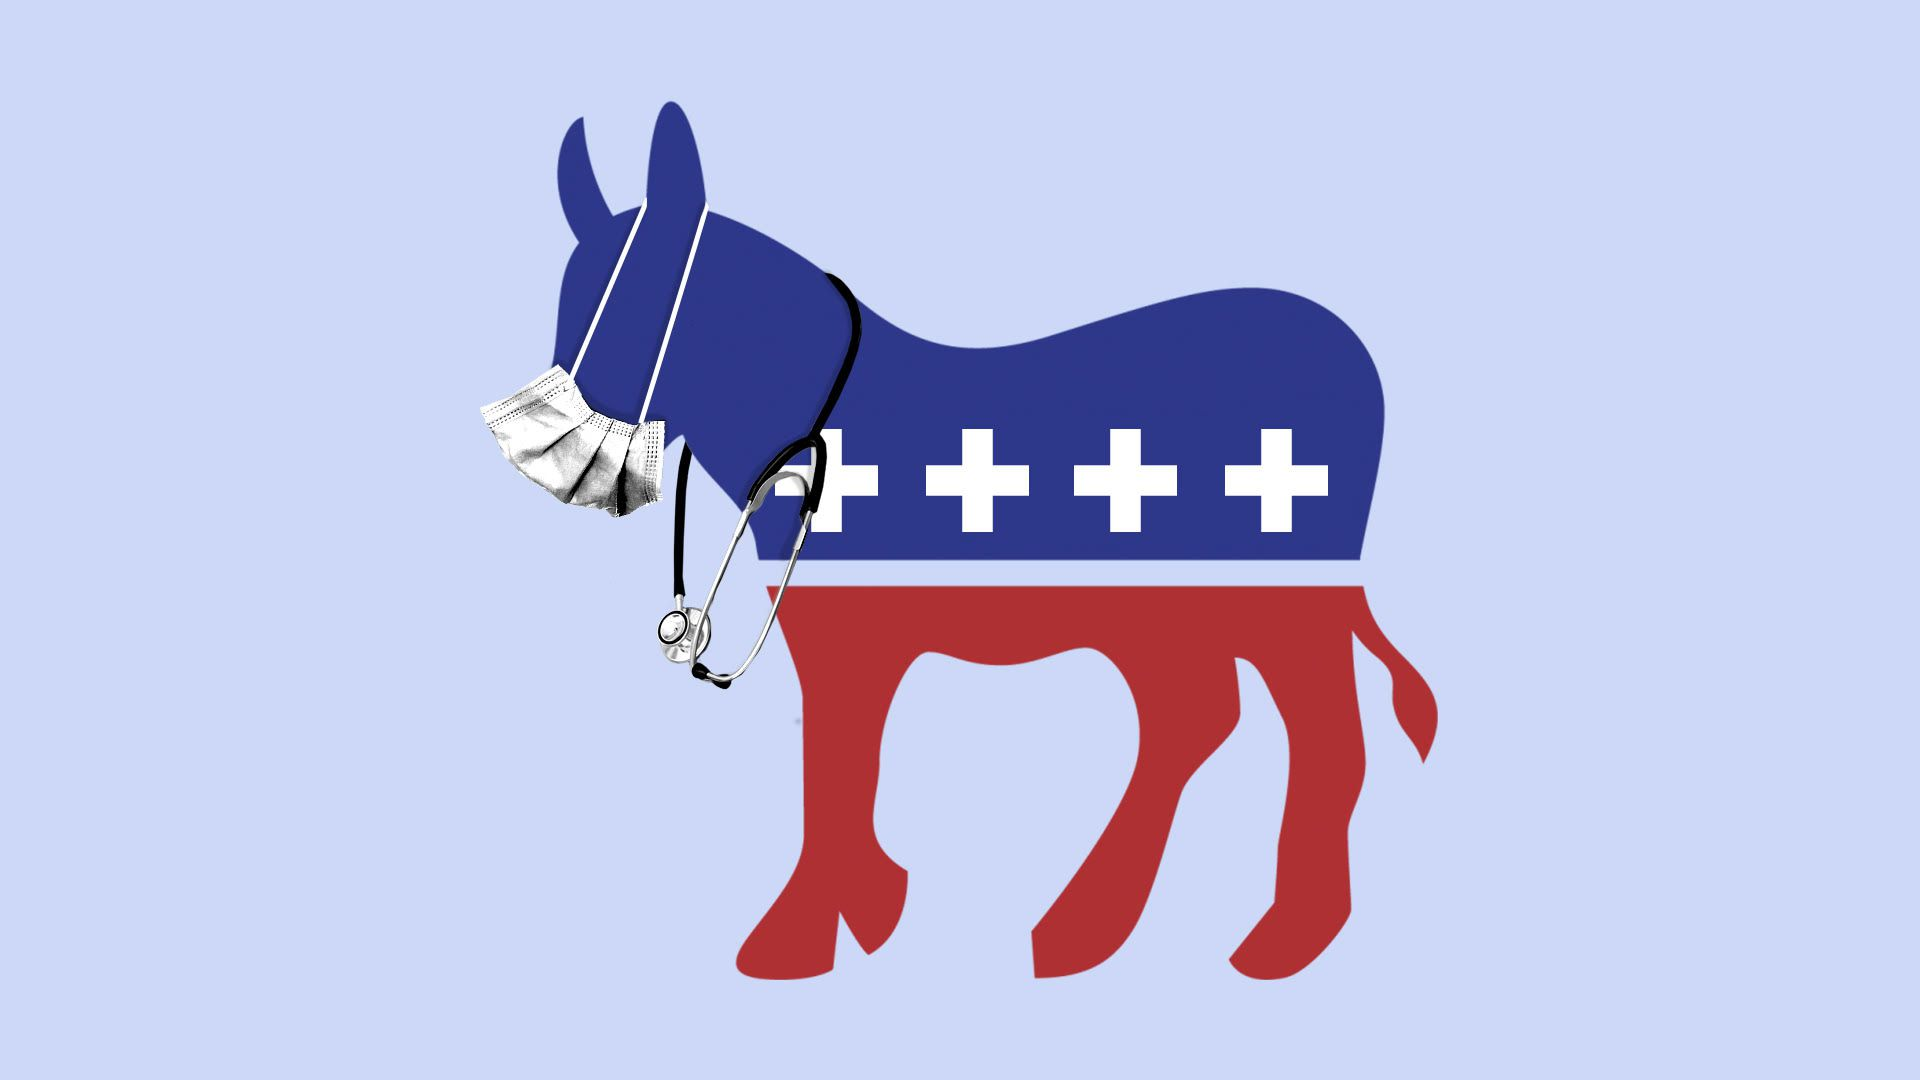 Illustration of democratic donkey wearing stethoscope and medical mask